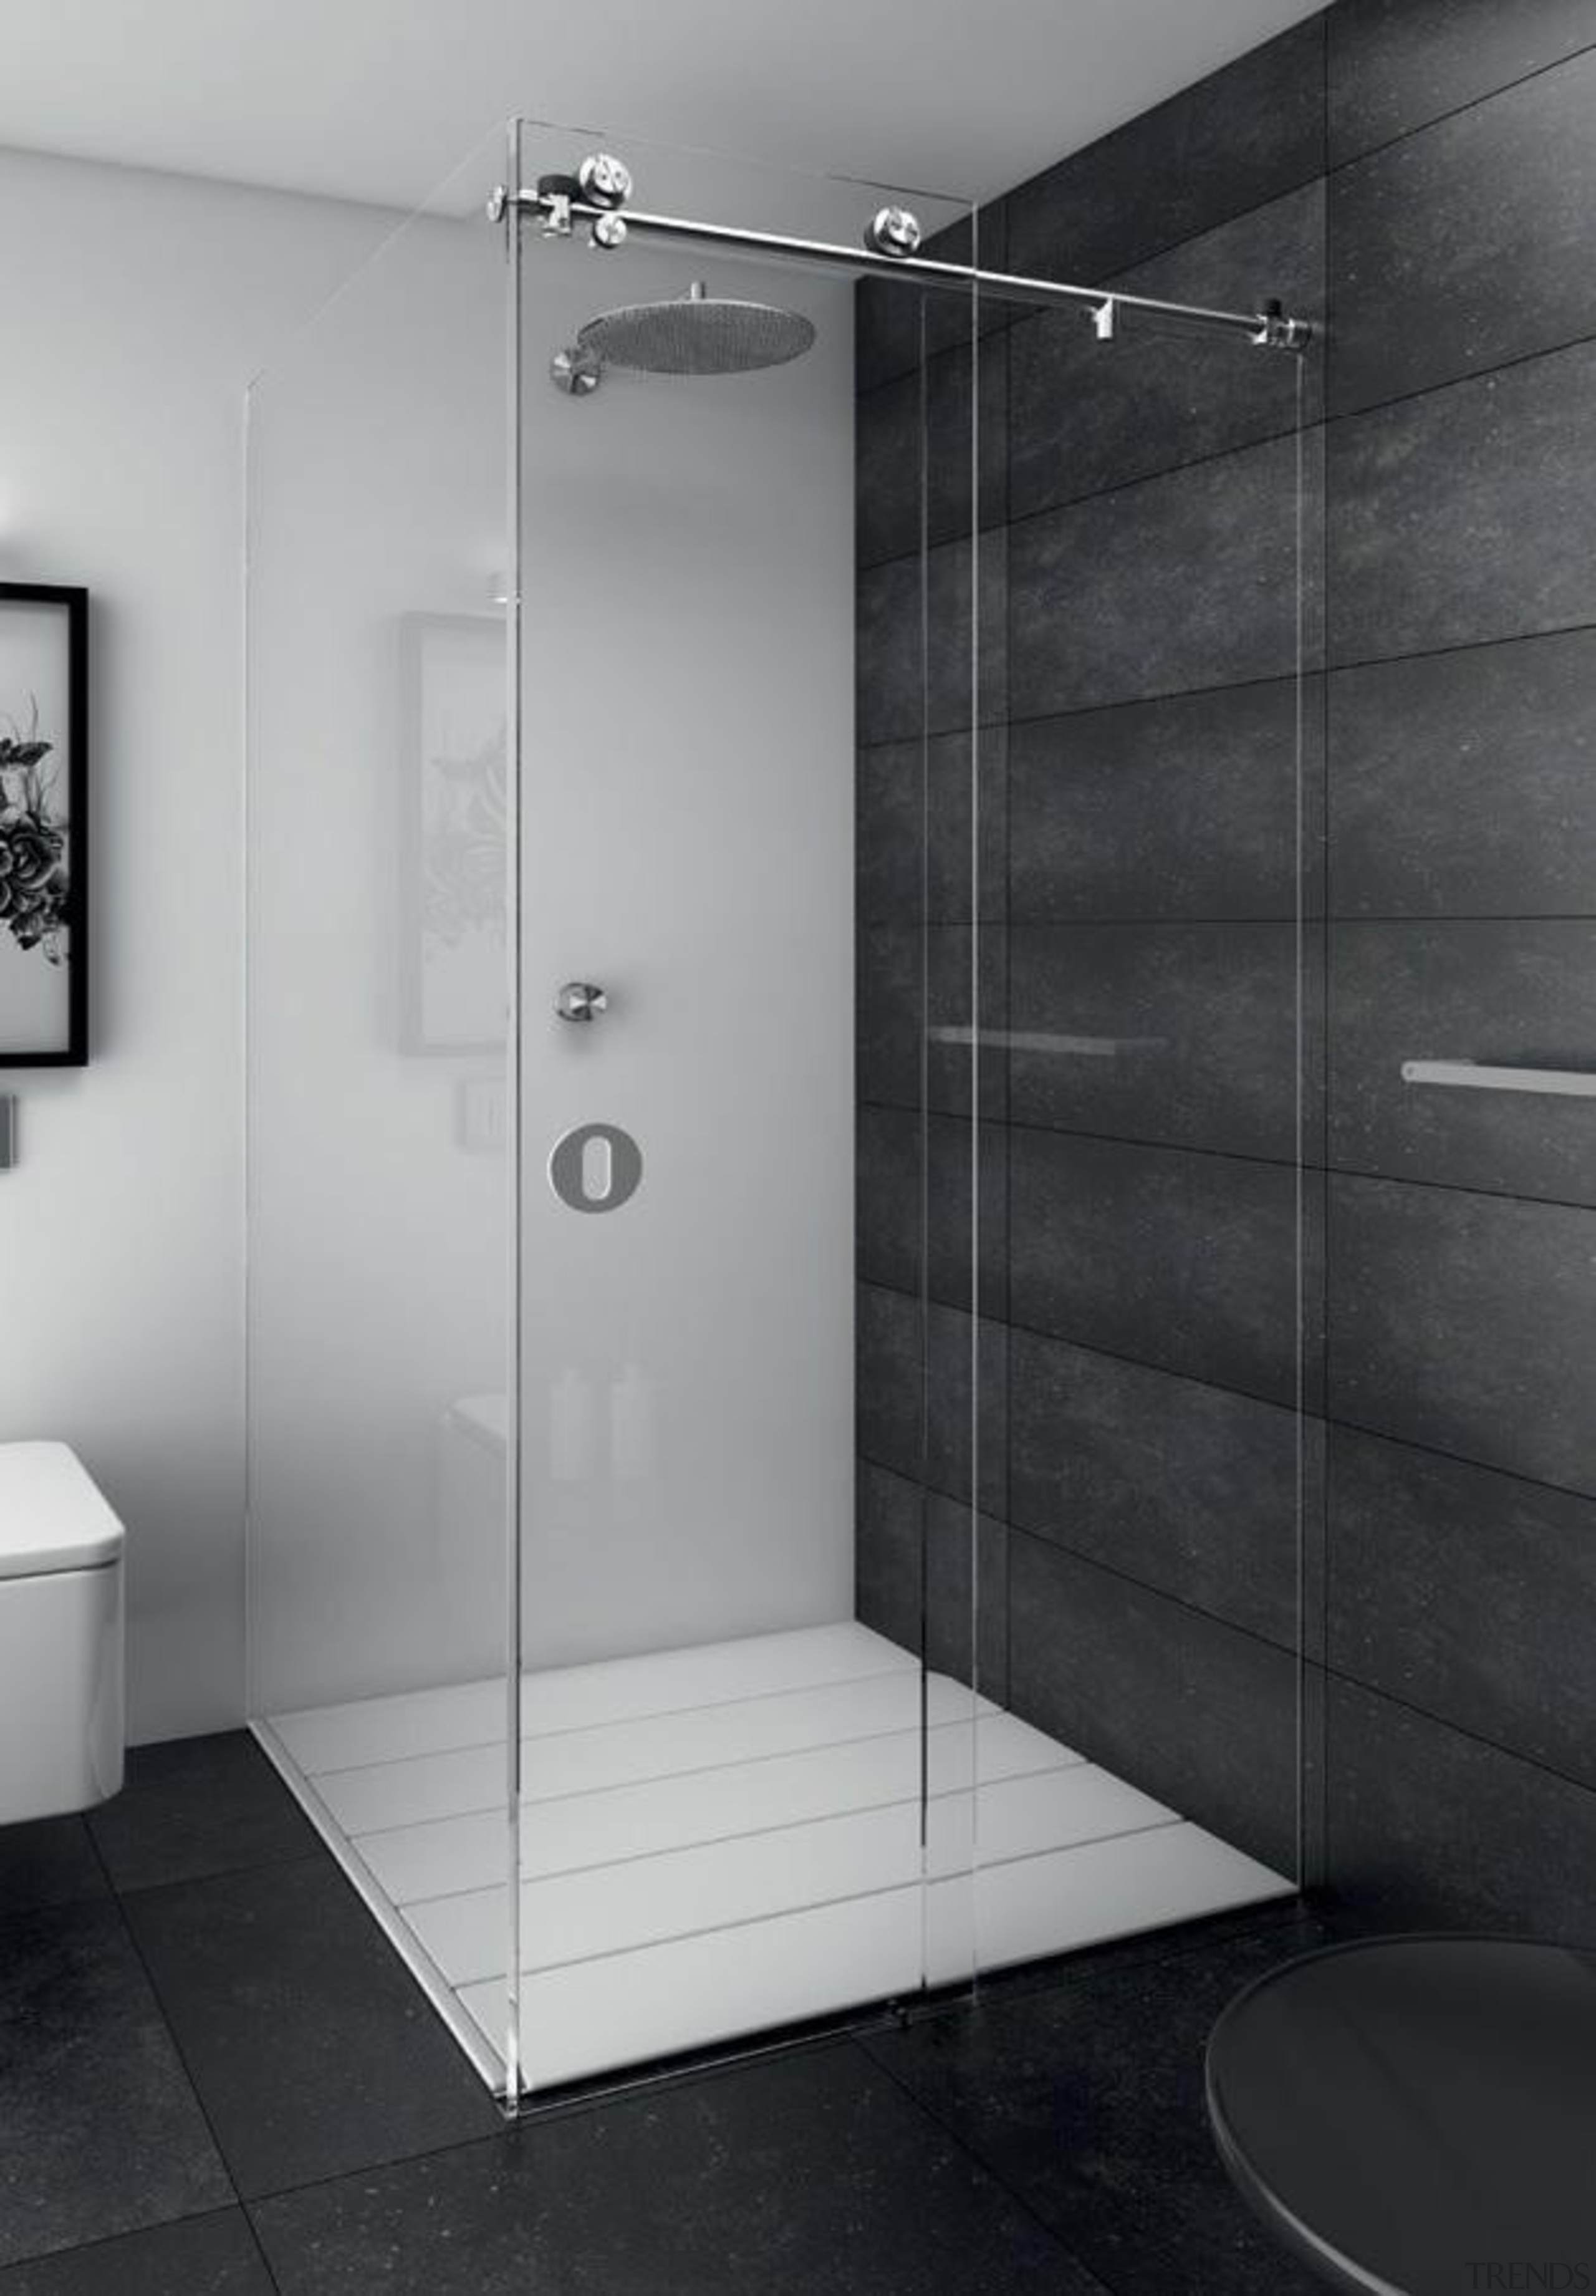 Mardeco International Ltd is an independent privately owned angle, bathroom, floor, glass, interior design, plumbing fixture, product design, shower, tile, gray, black